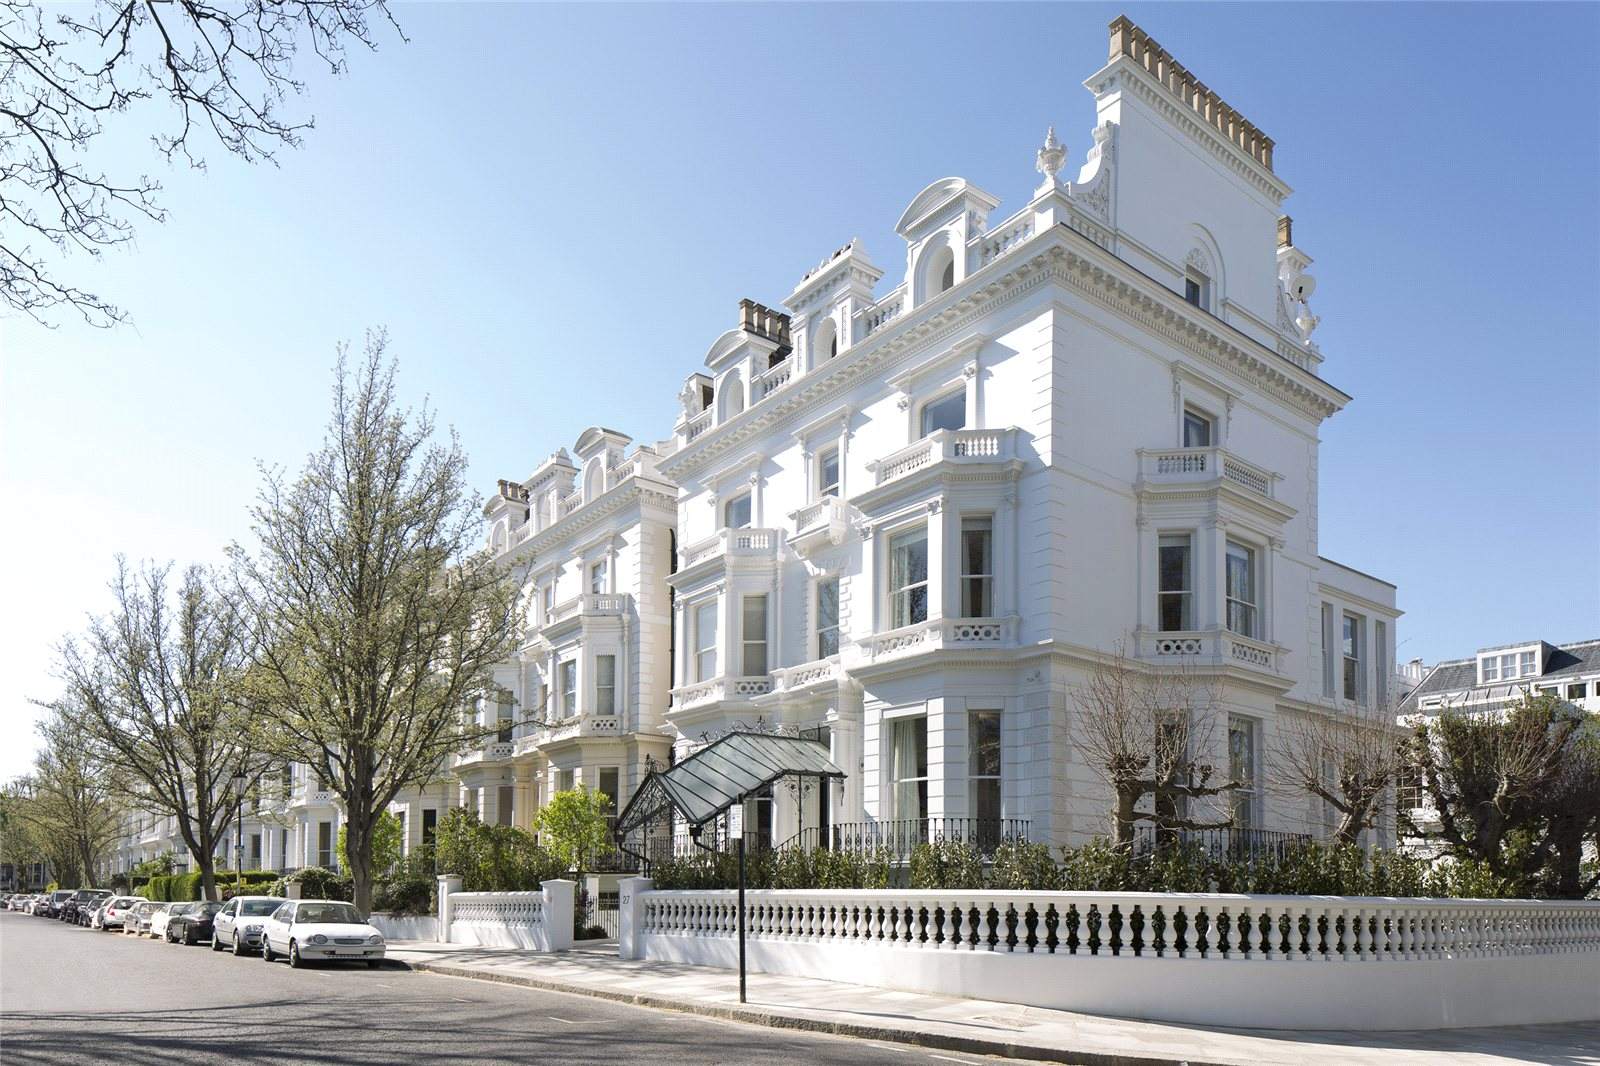 独户住宅 为 销售 在 Pembridge Square, Notting Hill, London, W2 Notting Hill, London, 英格兰